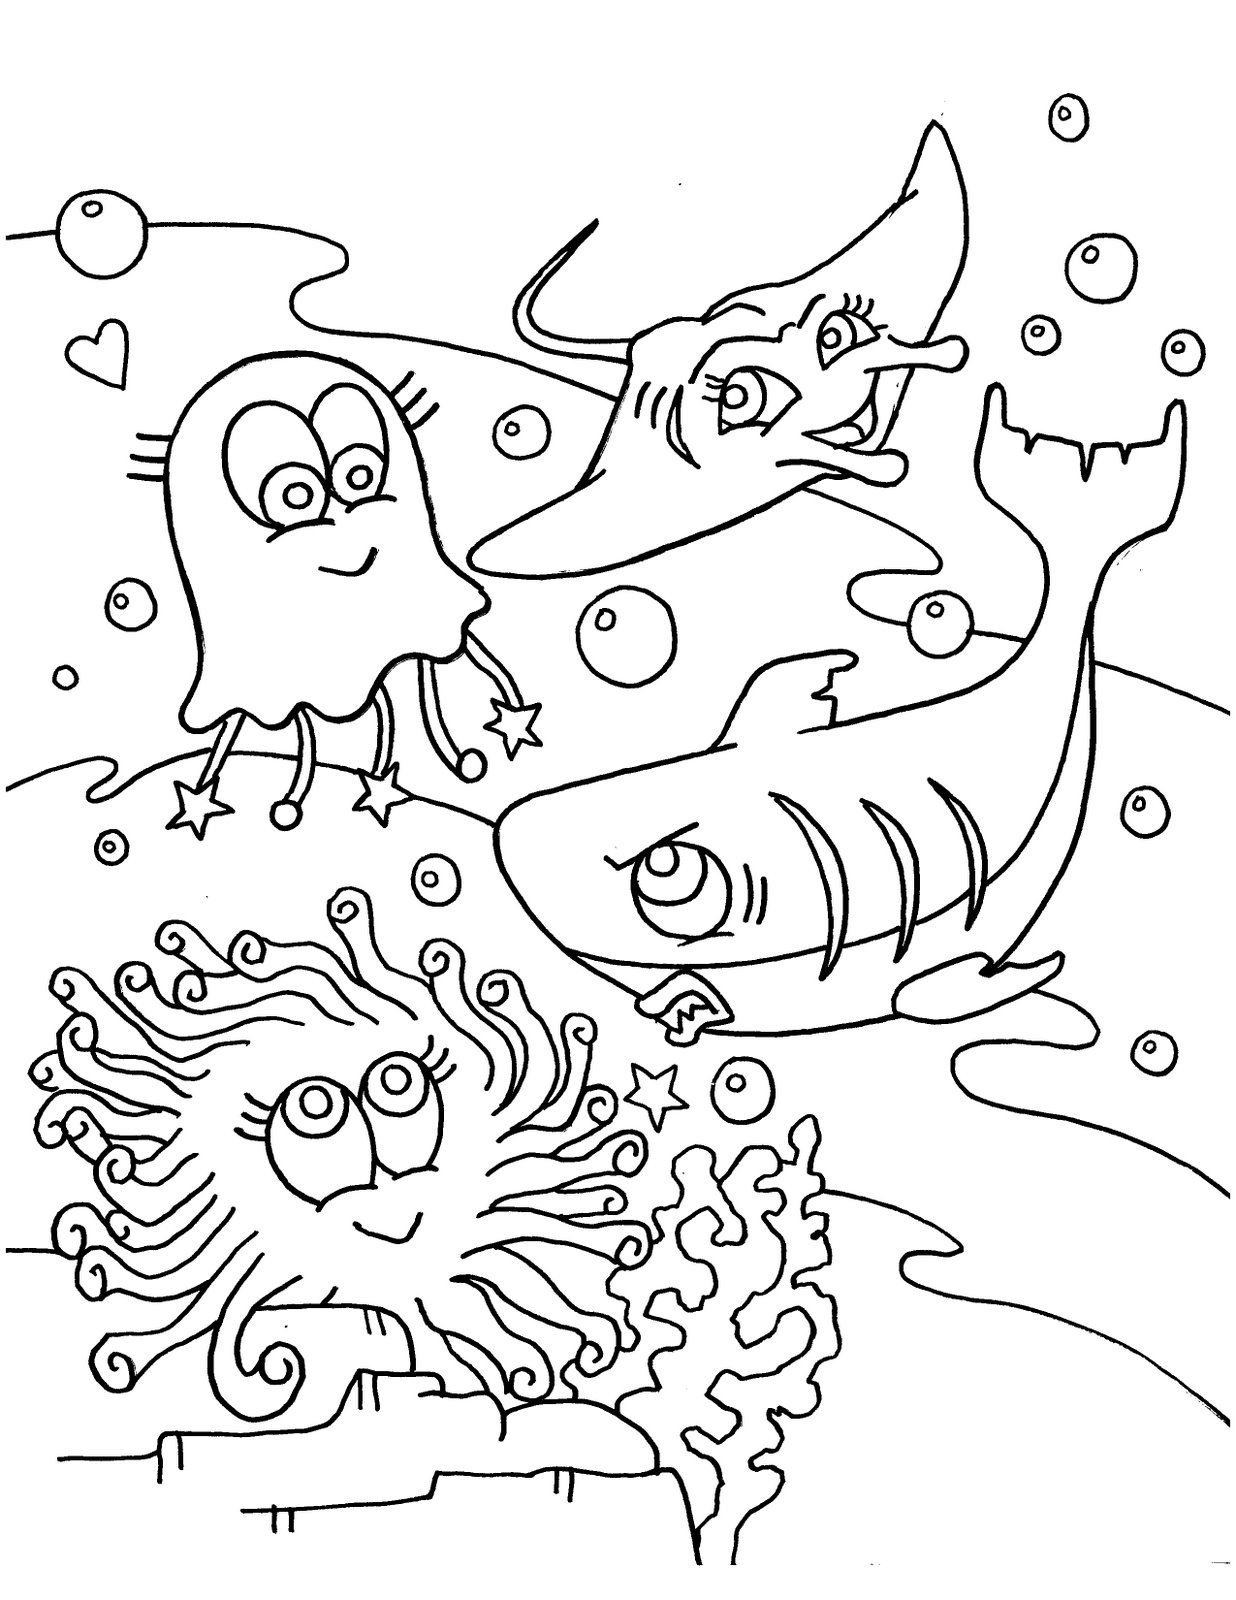 ocean animal coloring pages - Cute Ocean Animals Coloring Pages